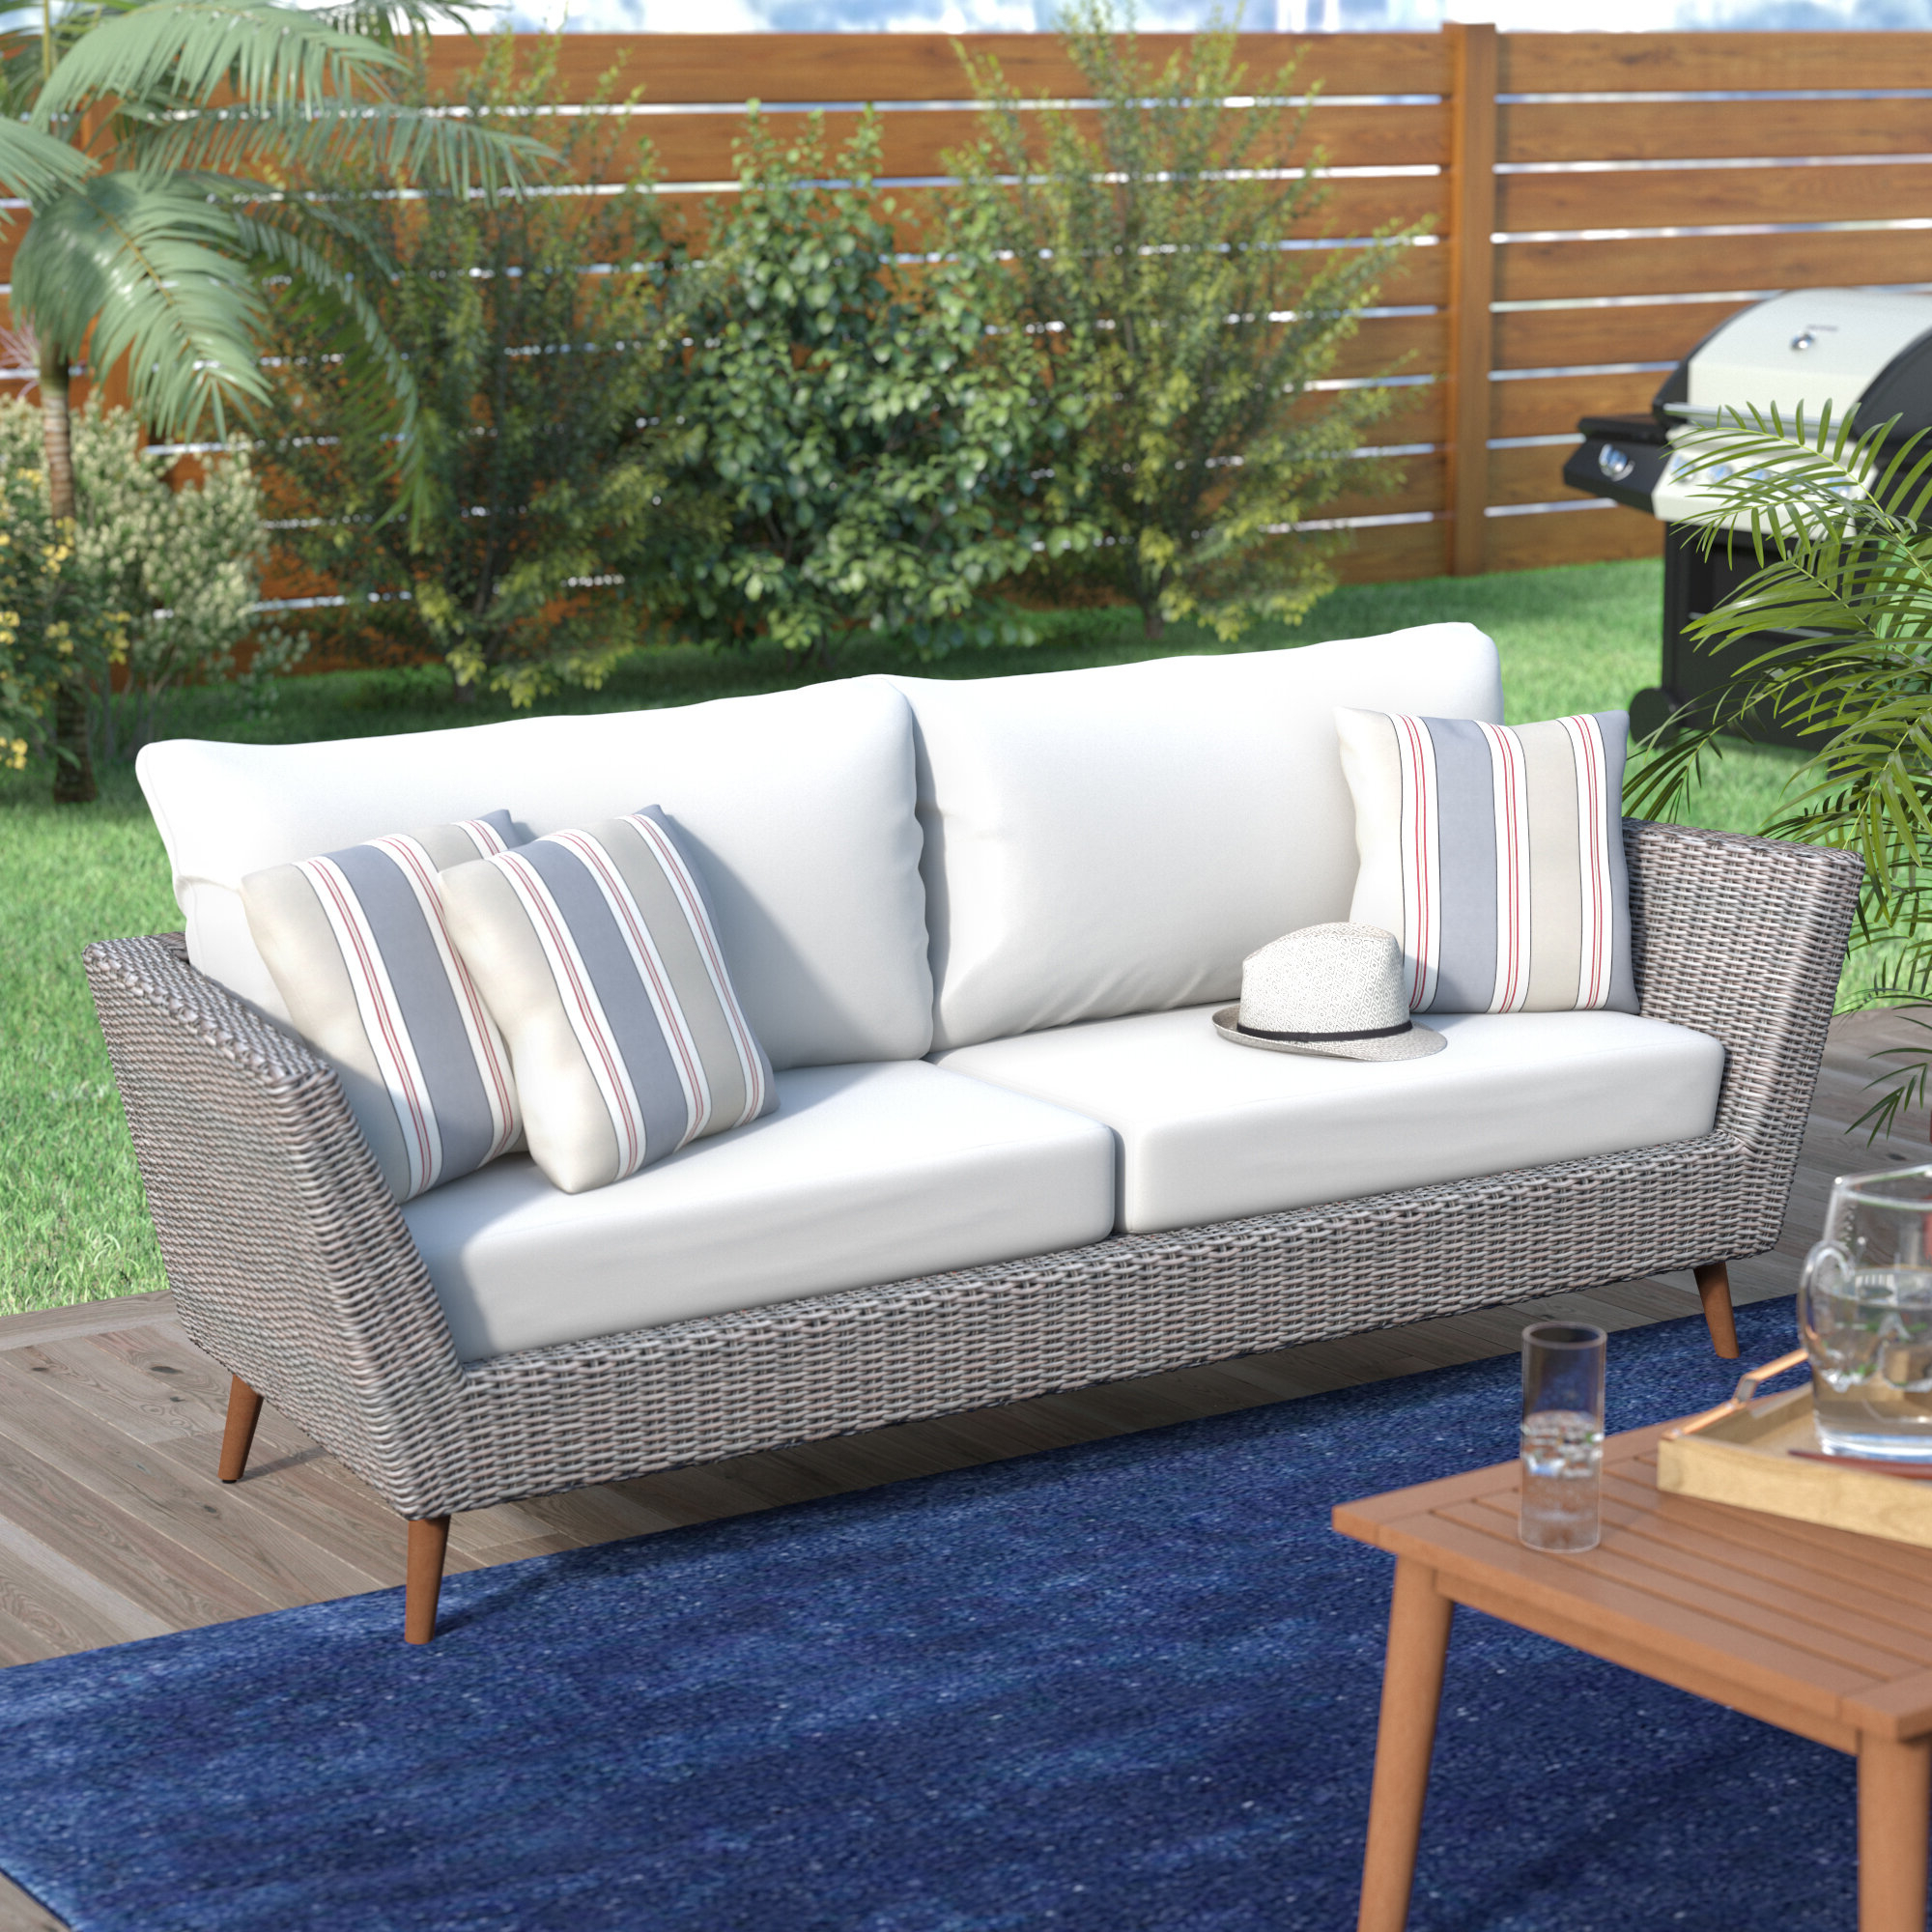 Newbury Patio Sofa With Cushions In Recent Rossville Outdoor Patio Sofas With Cushions (View 11 of 25)